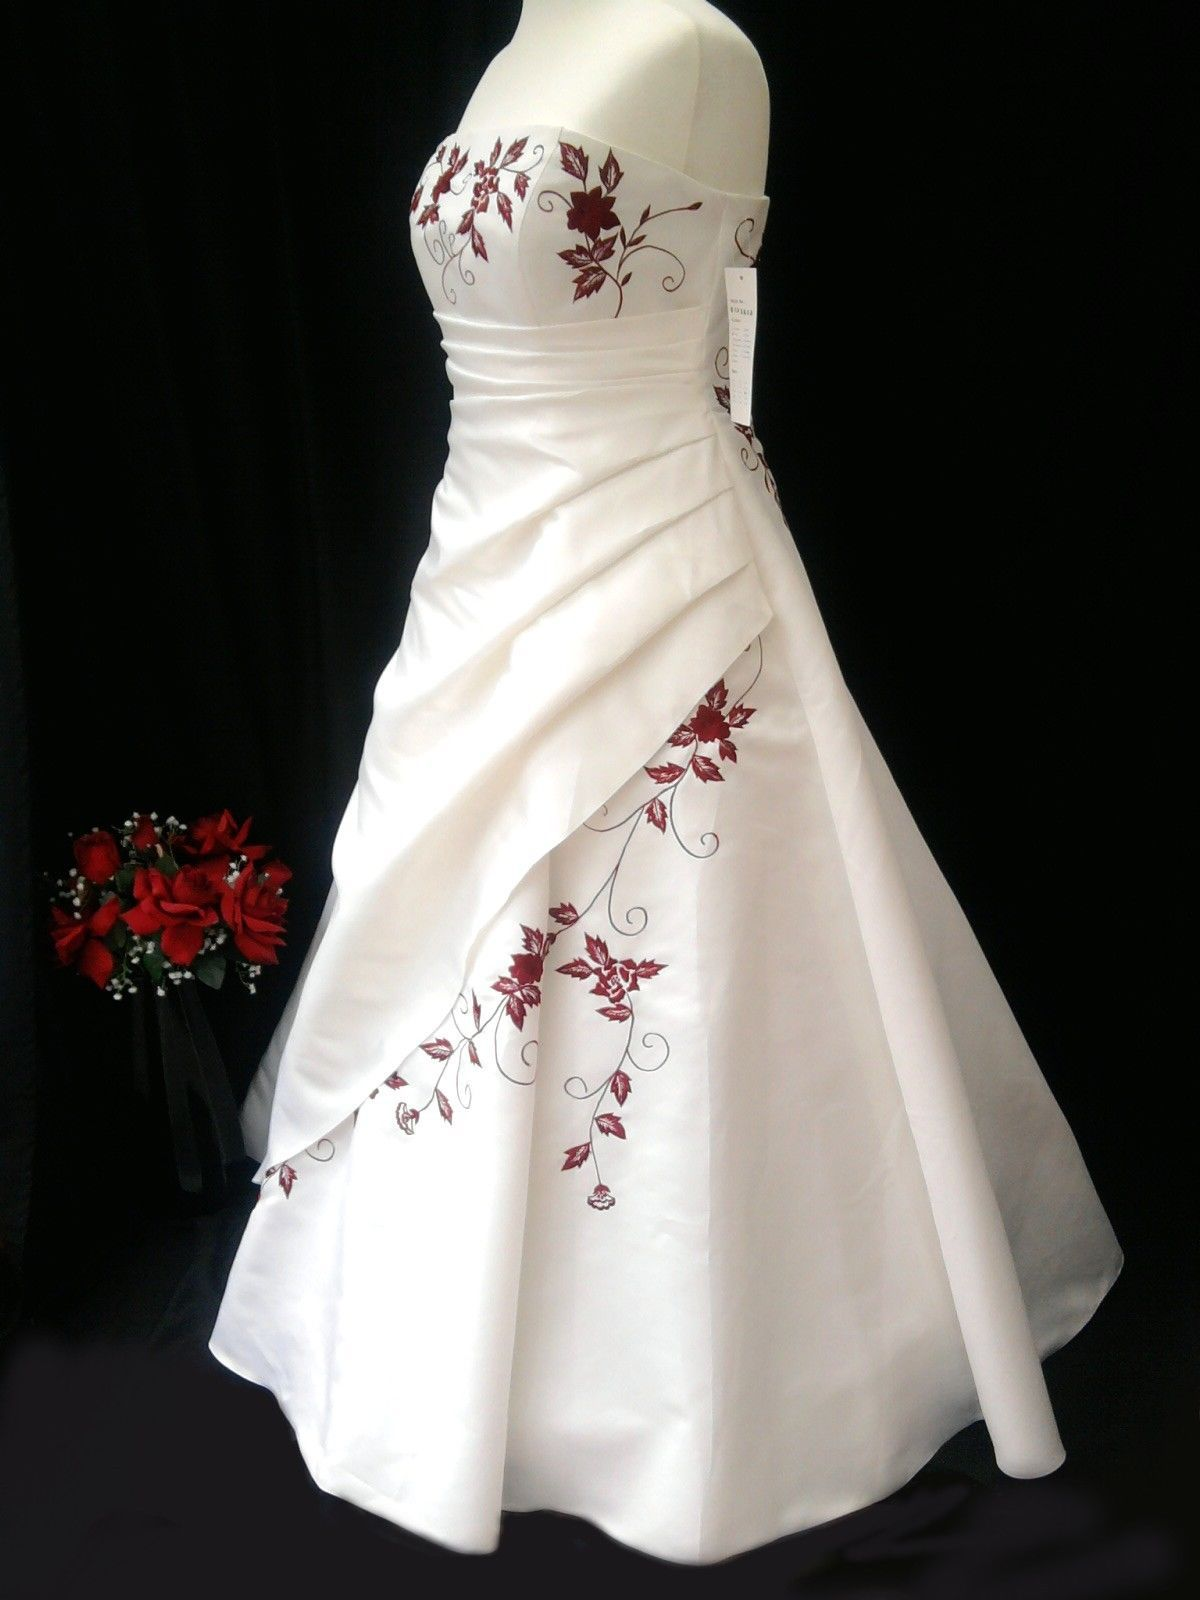 PURITY BRIDAL IVORY AND RED WEDDING DRESS SIZE 18 With Tags